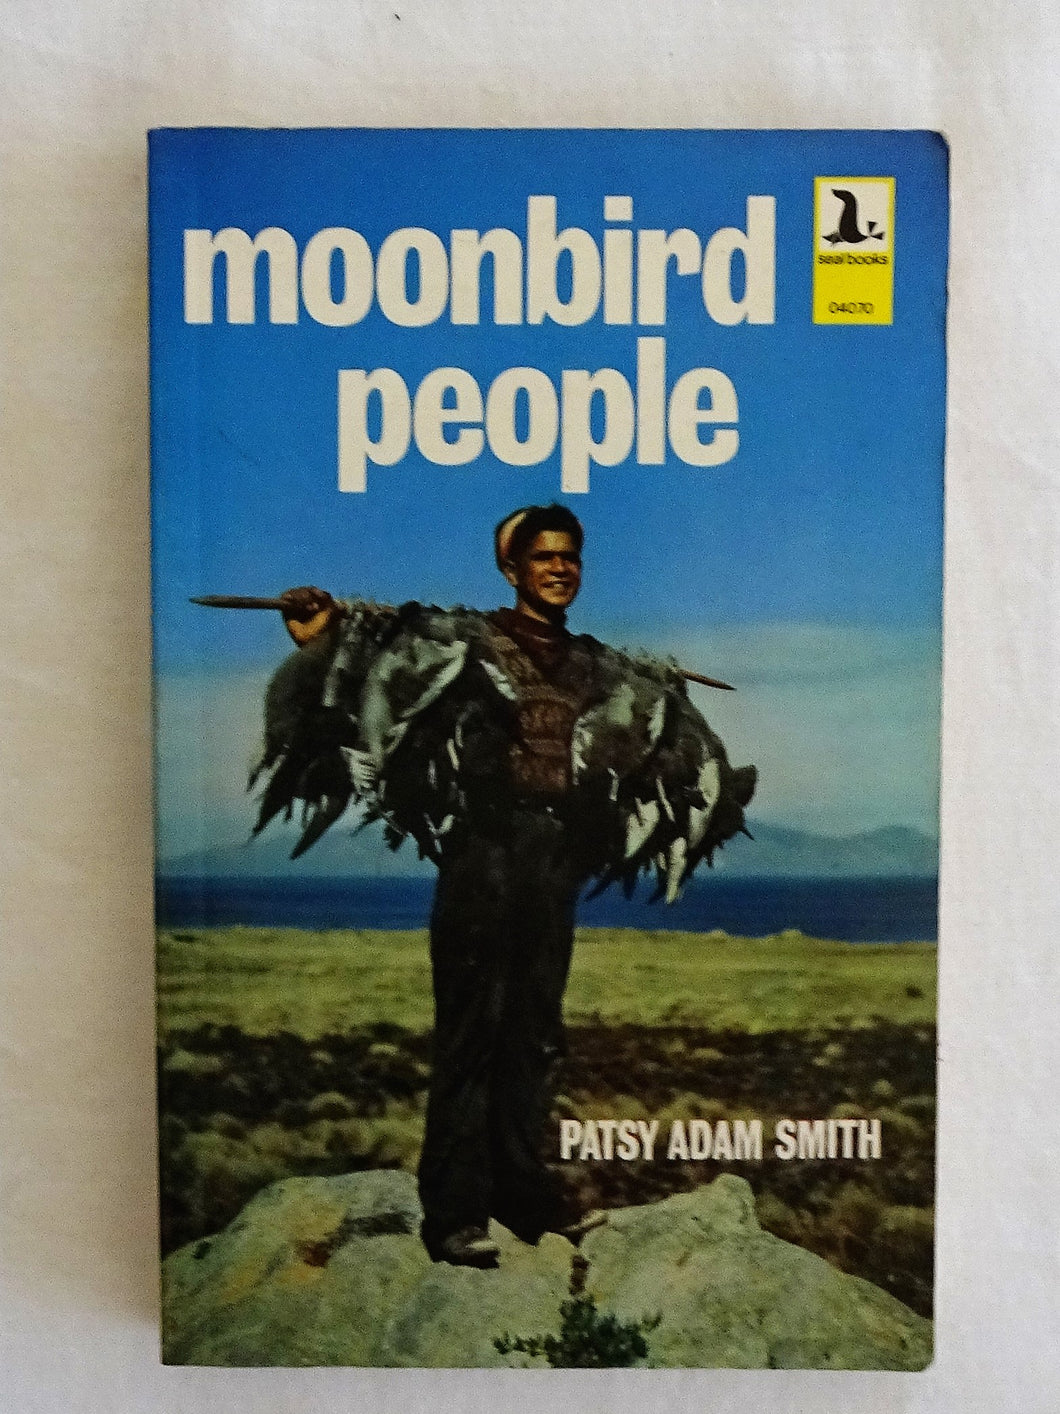 Moonbird People by Patsy Adam Smith